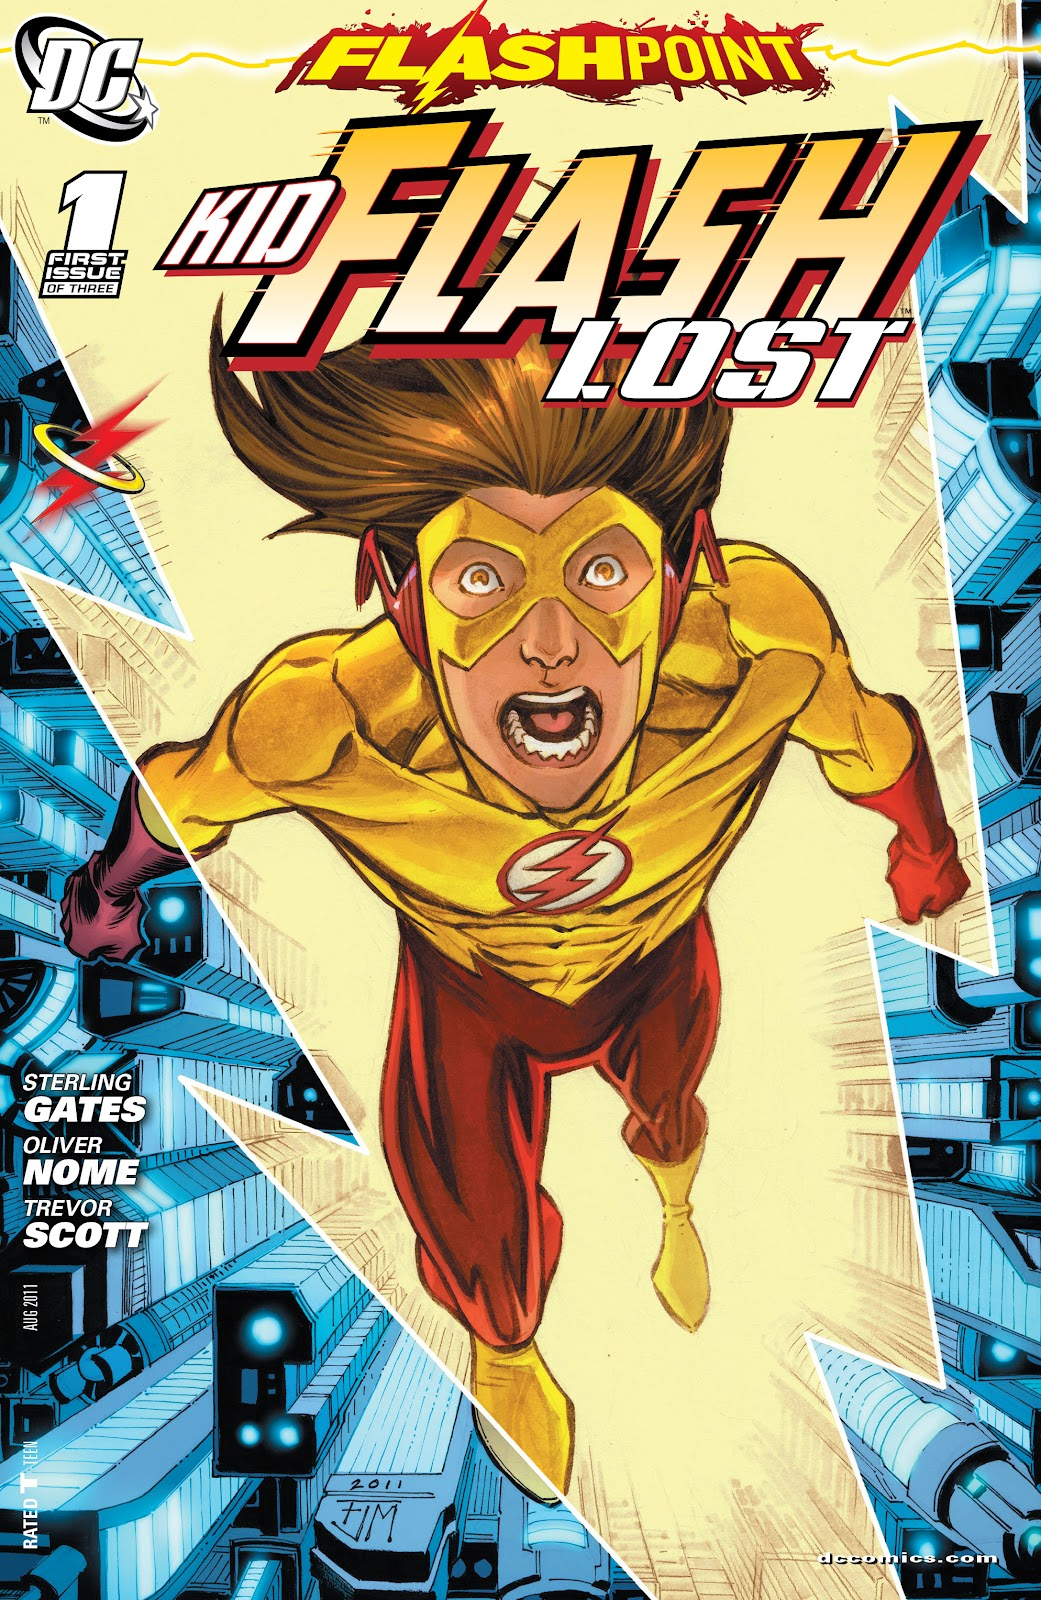 Flashpoint: Kid Flash Lost issue 1 - Page 1